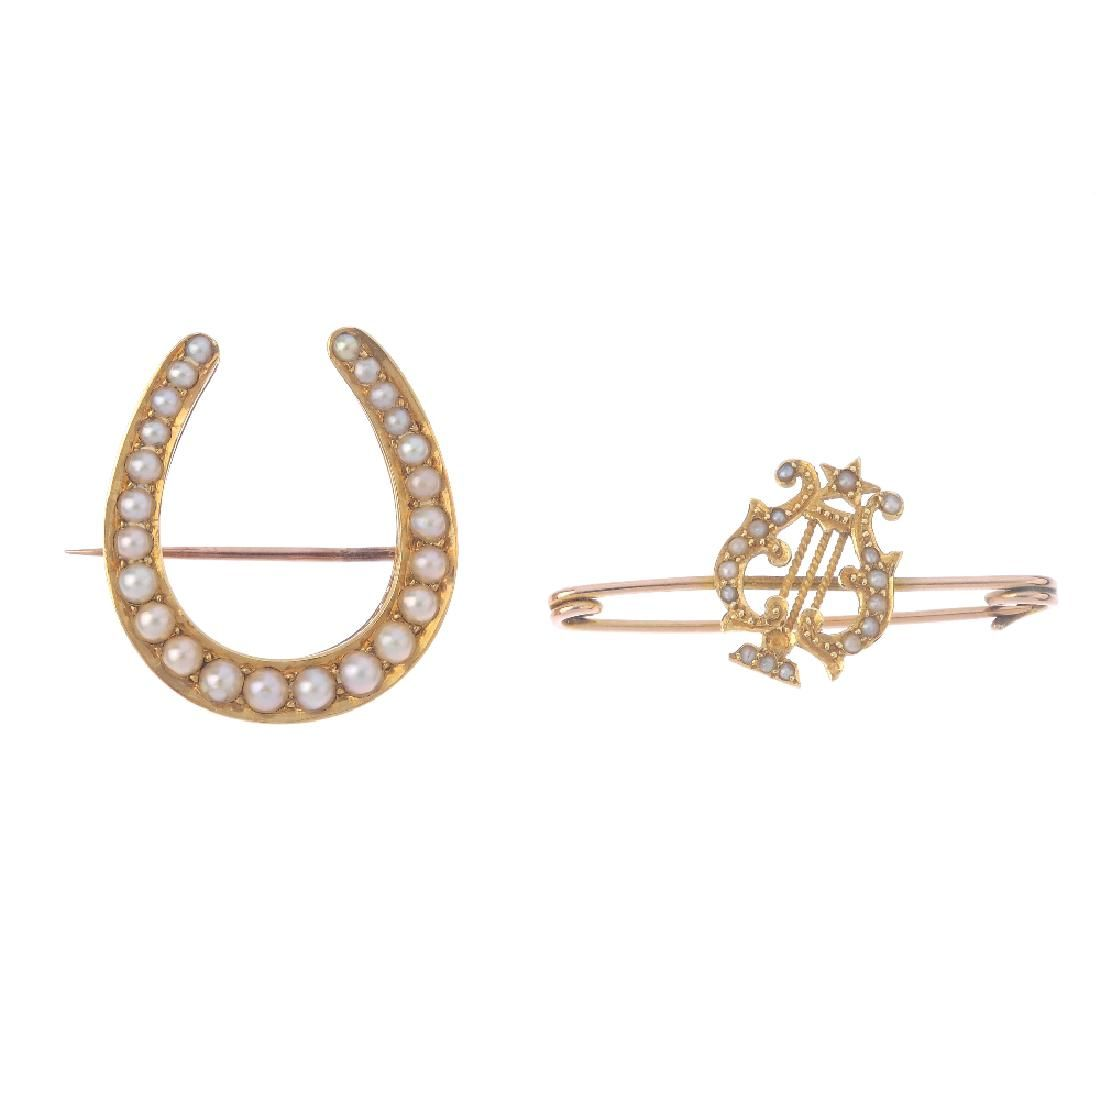 Two late Victorian gold split-pearl brooches. To